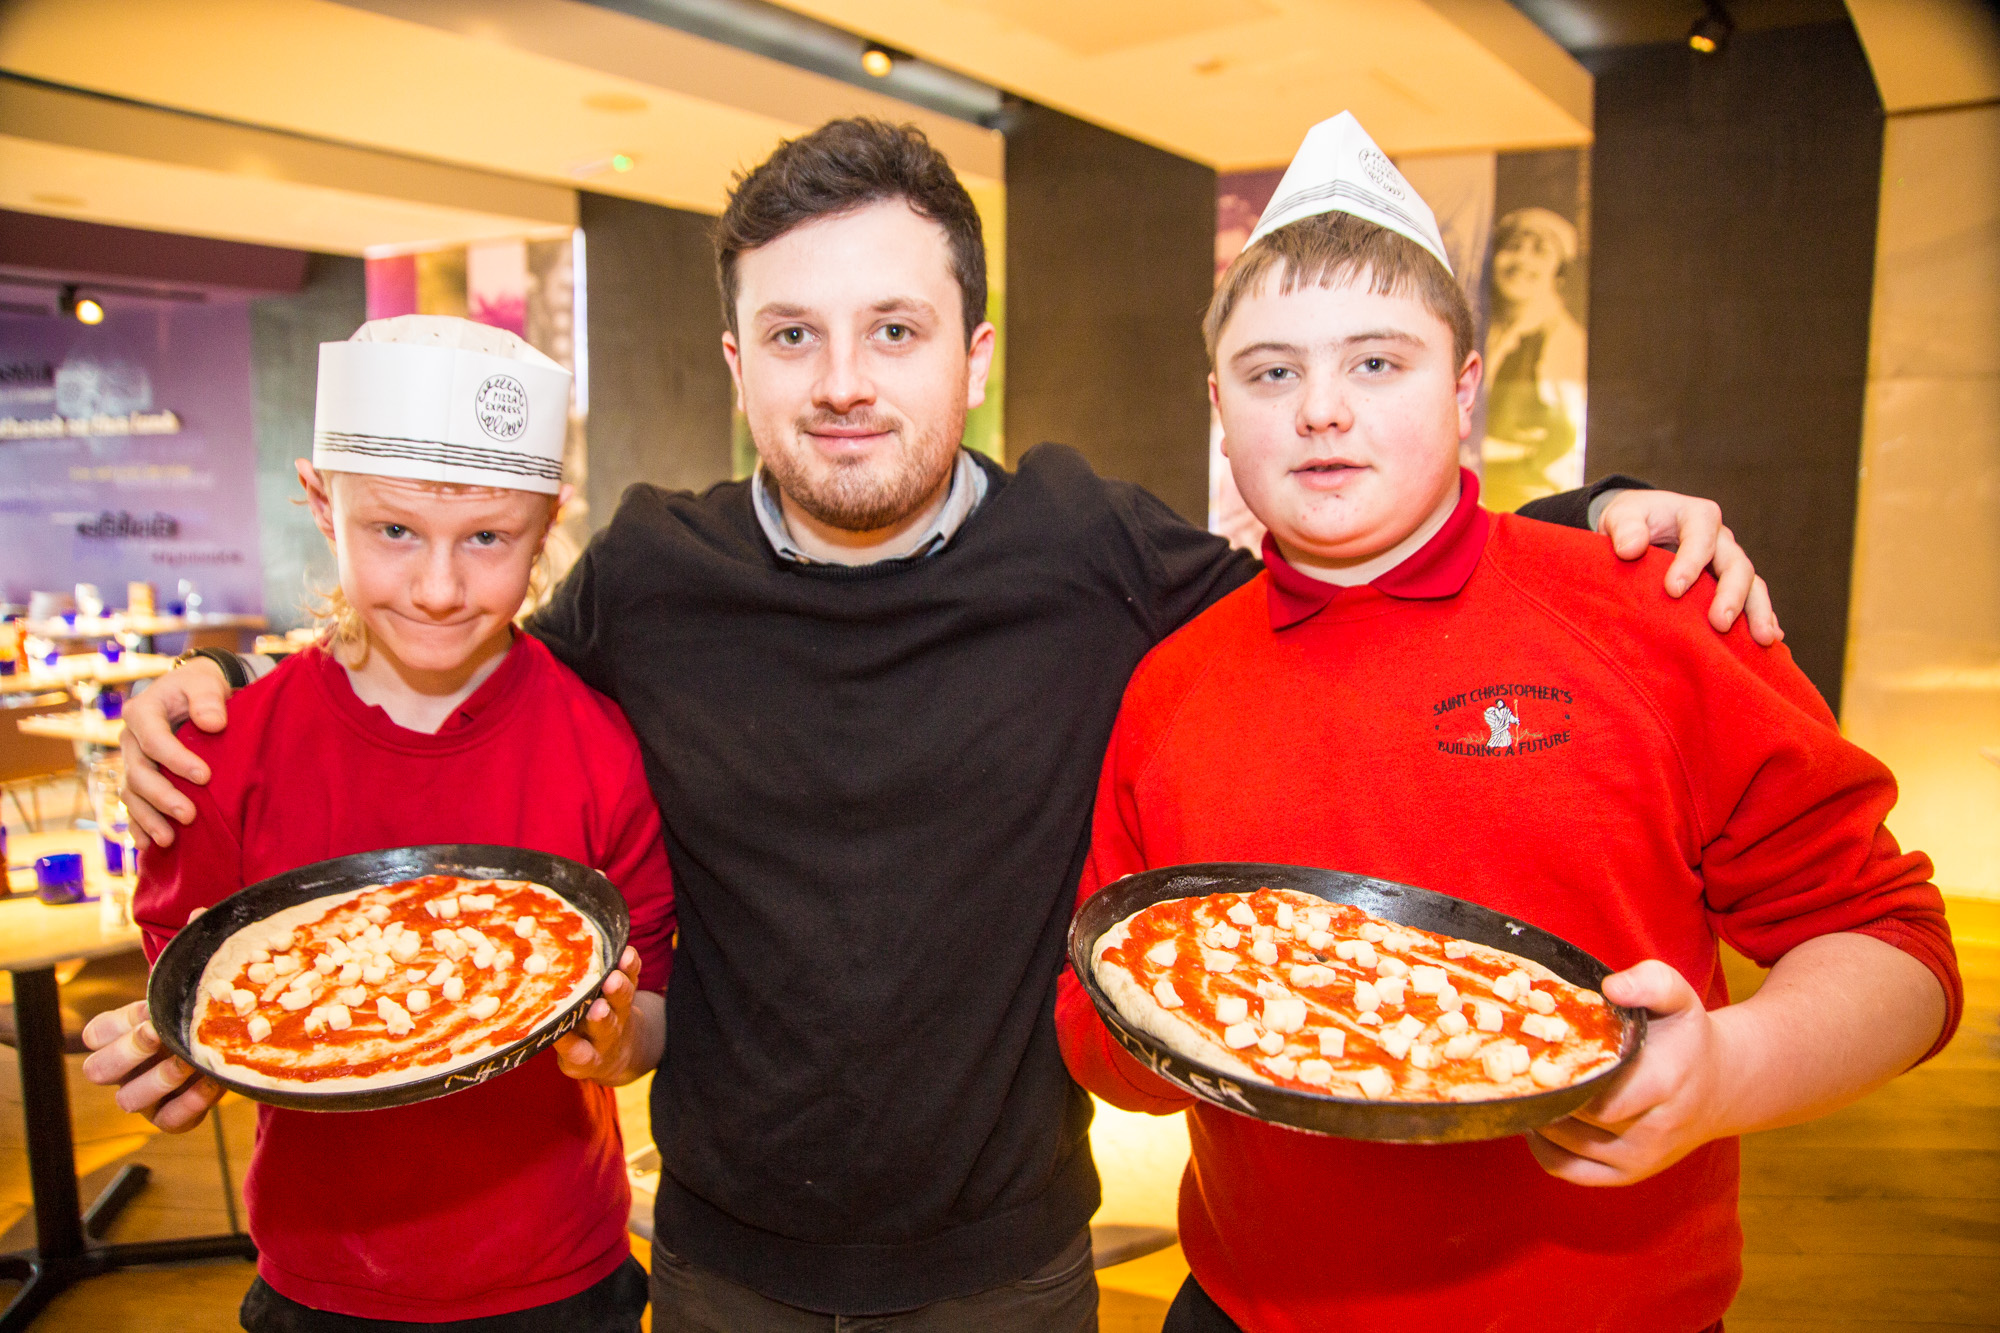 Culinary Kids Get A Pizza The Action At Eagles Meadow News